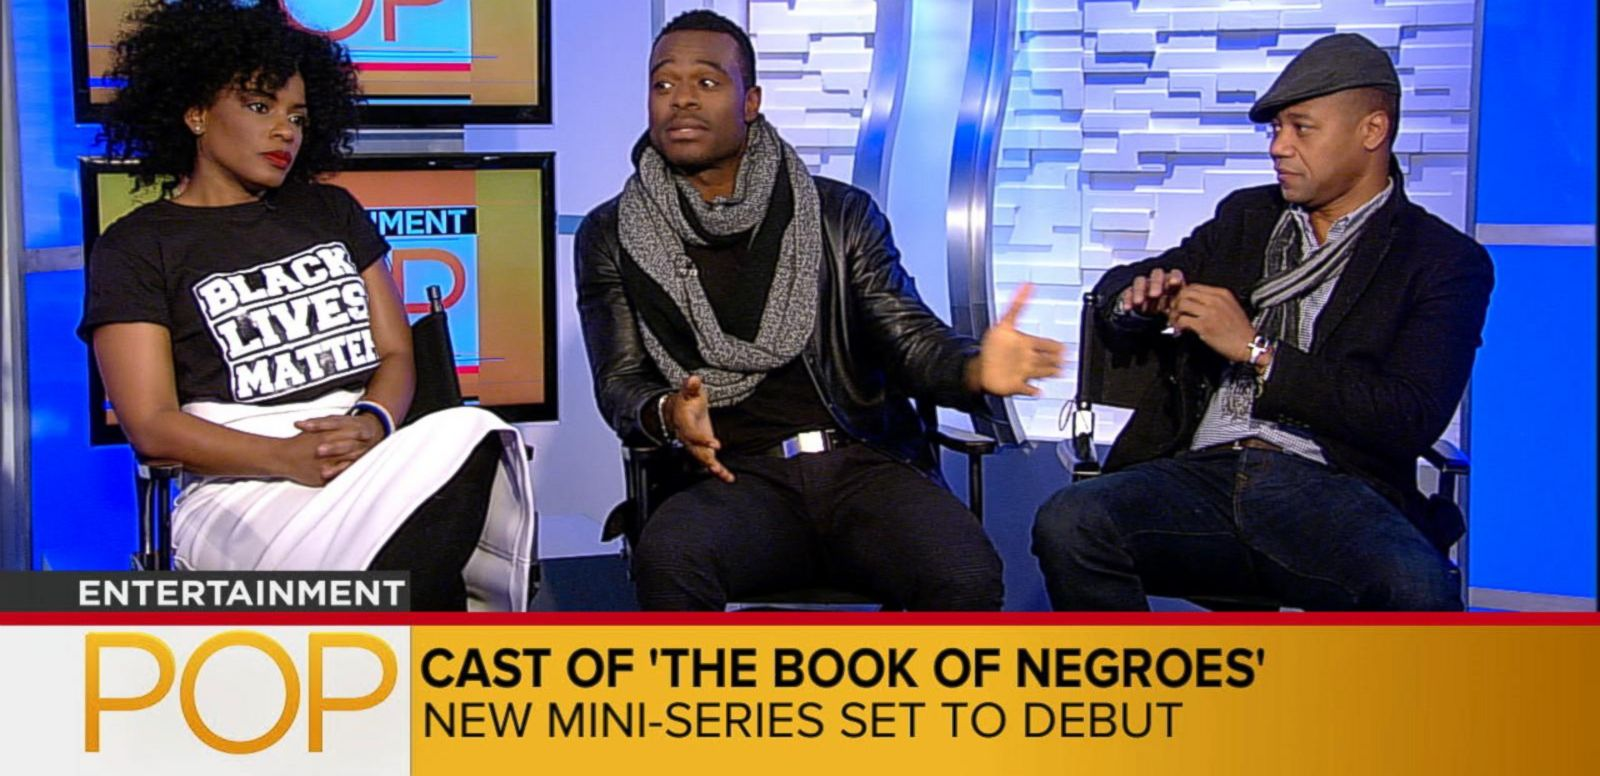 VIDEO: Cast of the Book of Negroes